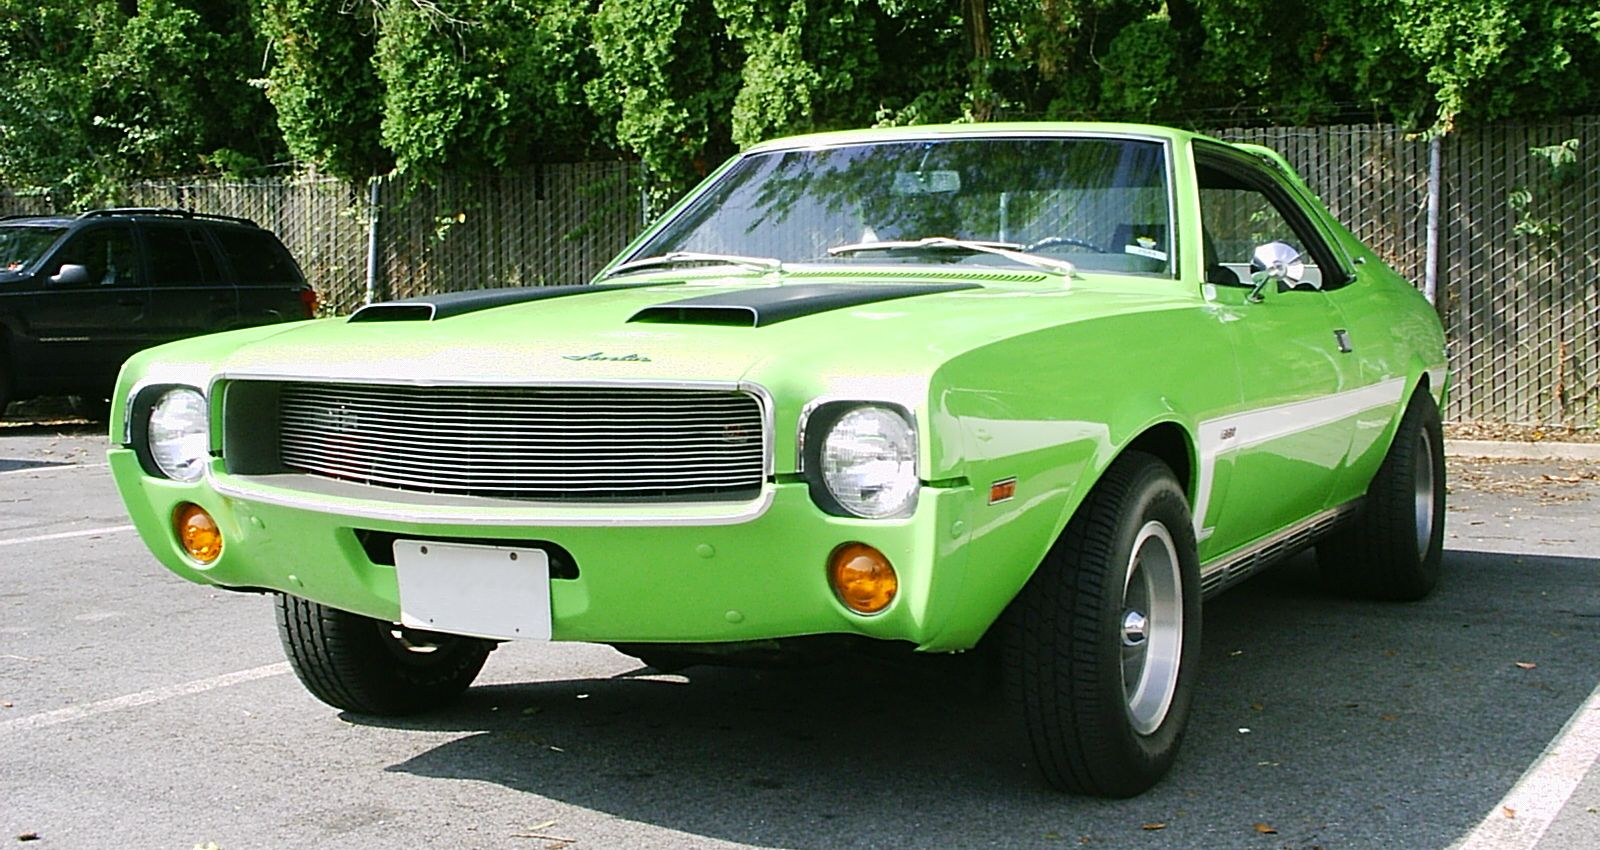 Neon Green 1969 Mod Javelin Customized With A Grille From An Amx